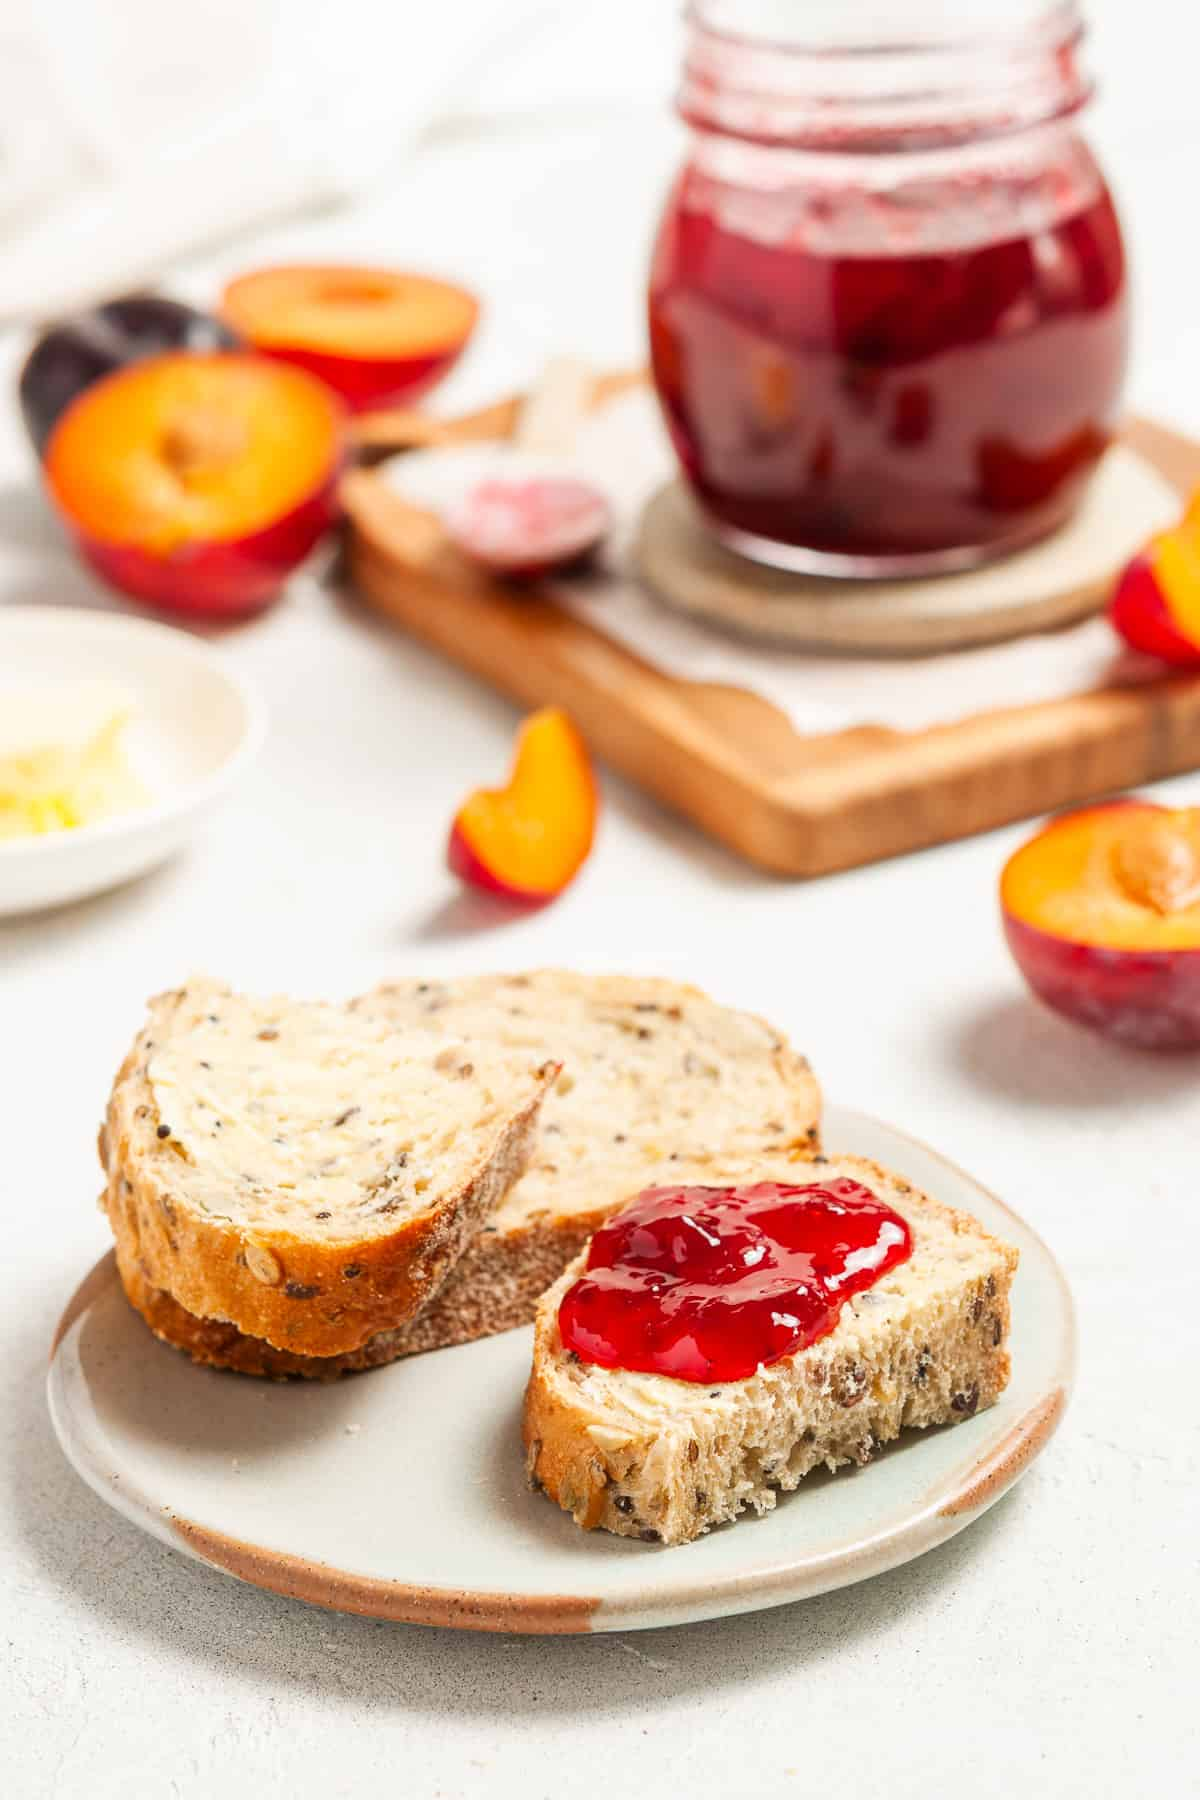 Two pieces of bread, with some jam on the top and the jar of jam and some halved plums in the background.